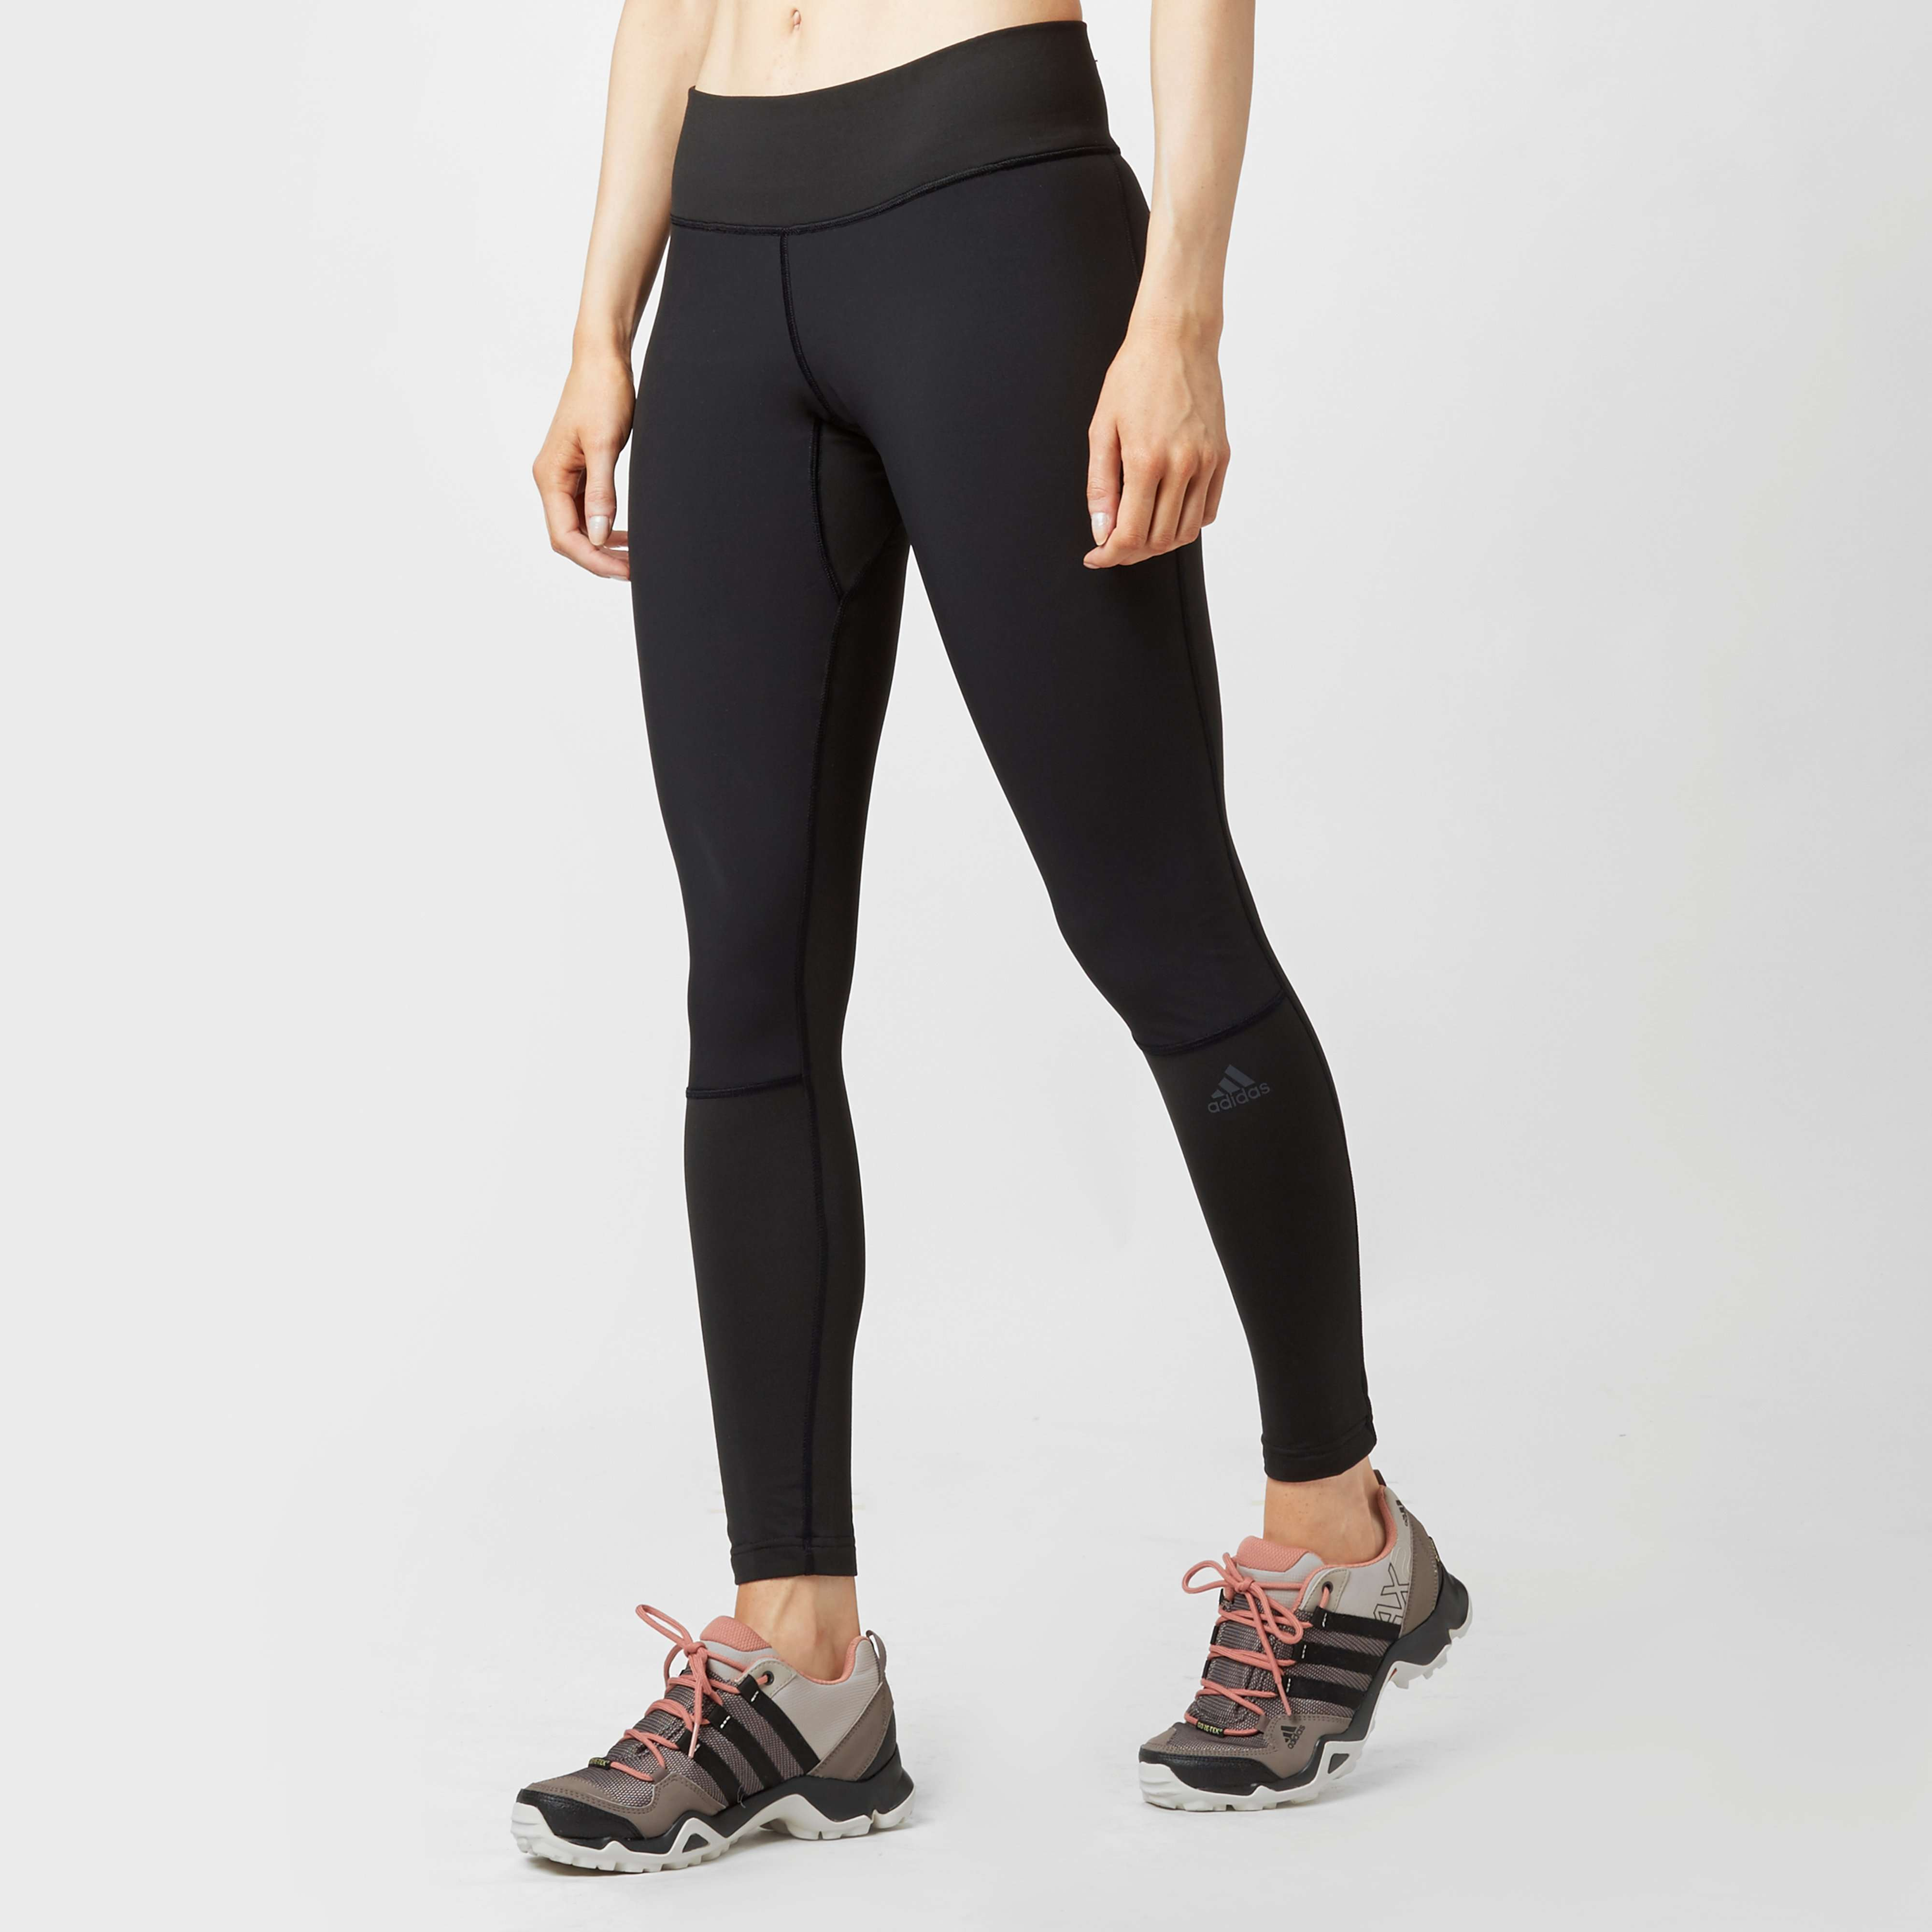 ADIDAS Women's Hike Tights